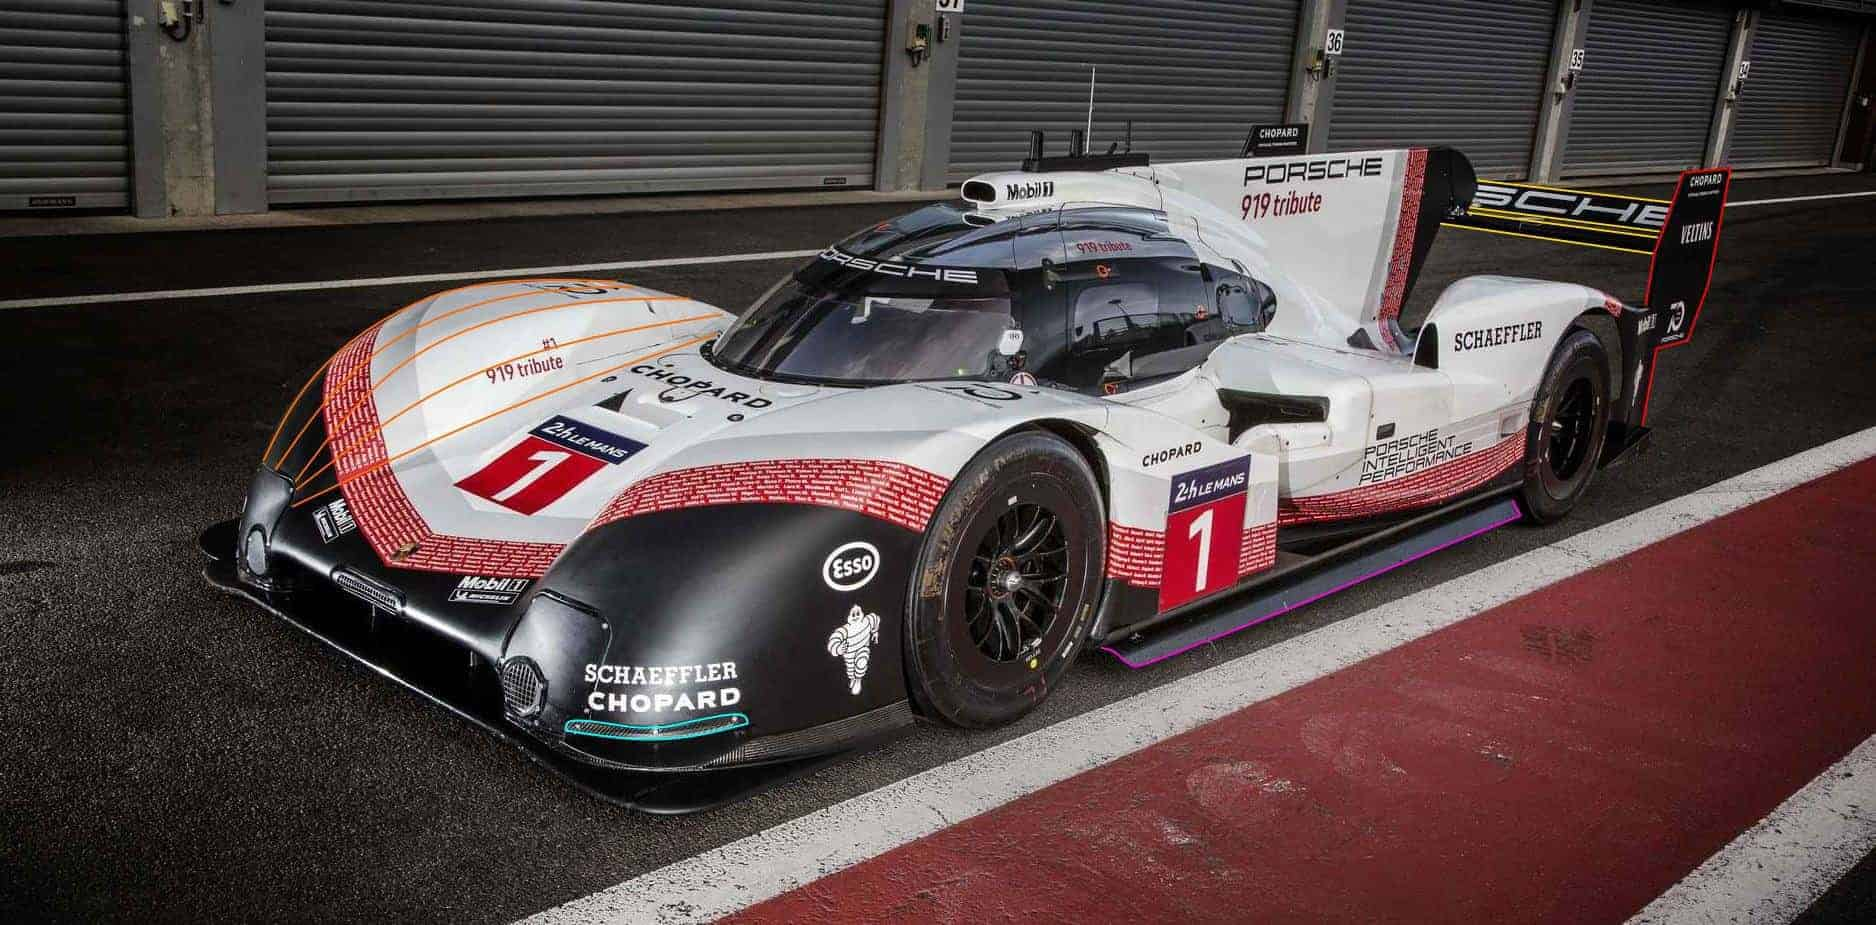 Porsche 919 Hybrid EVO side Spa Francorchamps Photo MAXF1net Porsche